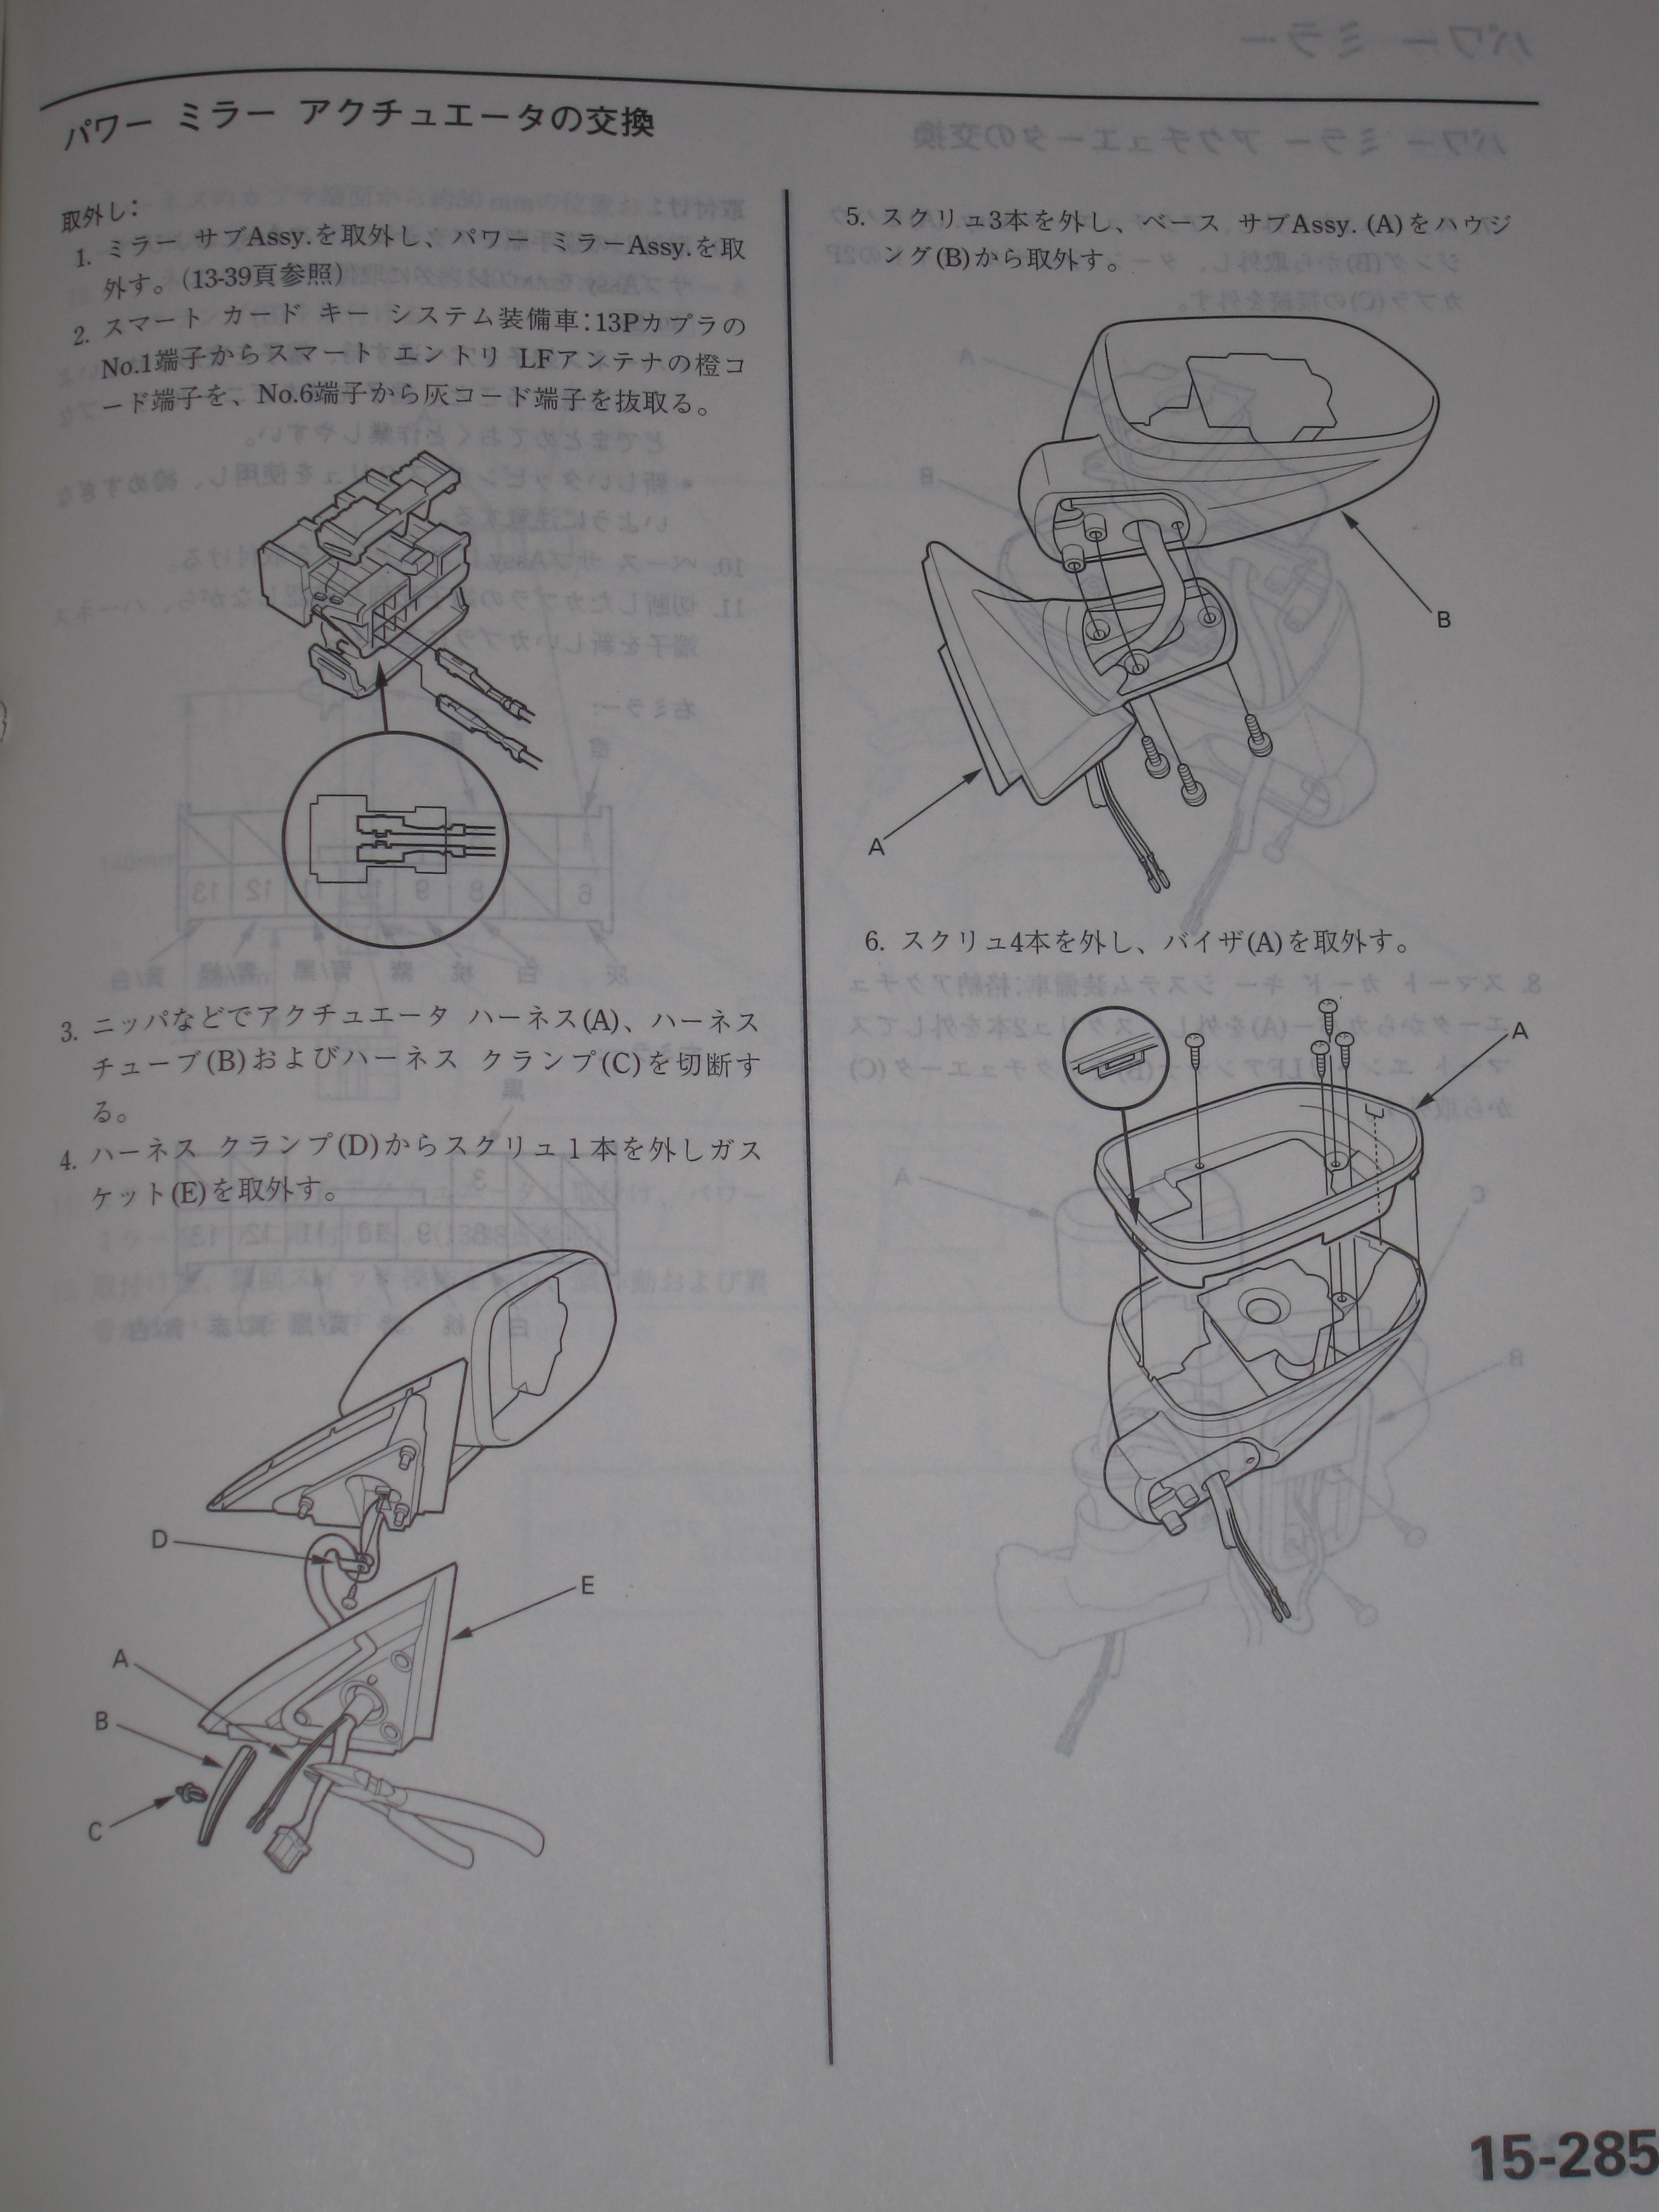 Way Switch Wiring Diagram As Well 4 Way Switch Wiring Diagram